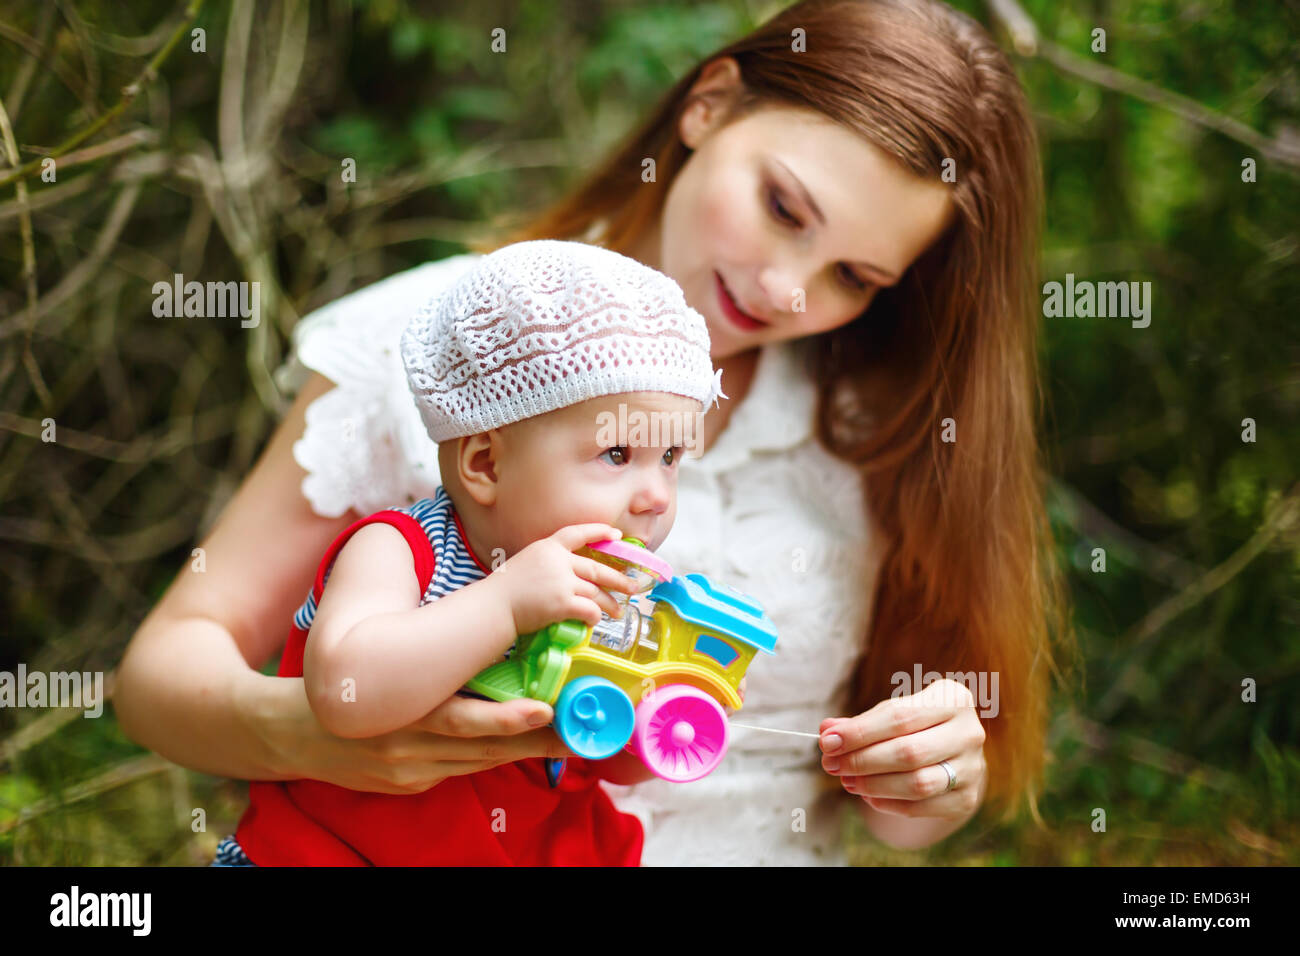 Cute Toddler Baby Girl sitting on Mom's Hands, Playing with Toy. Détente dans le parc d'été Photo Stock